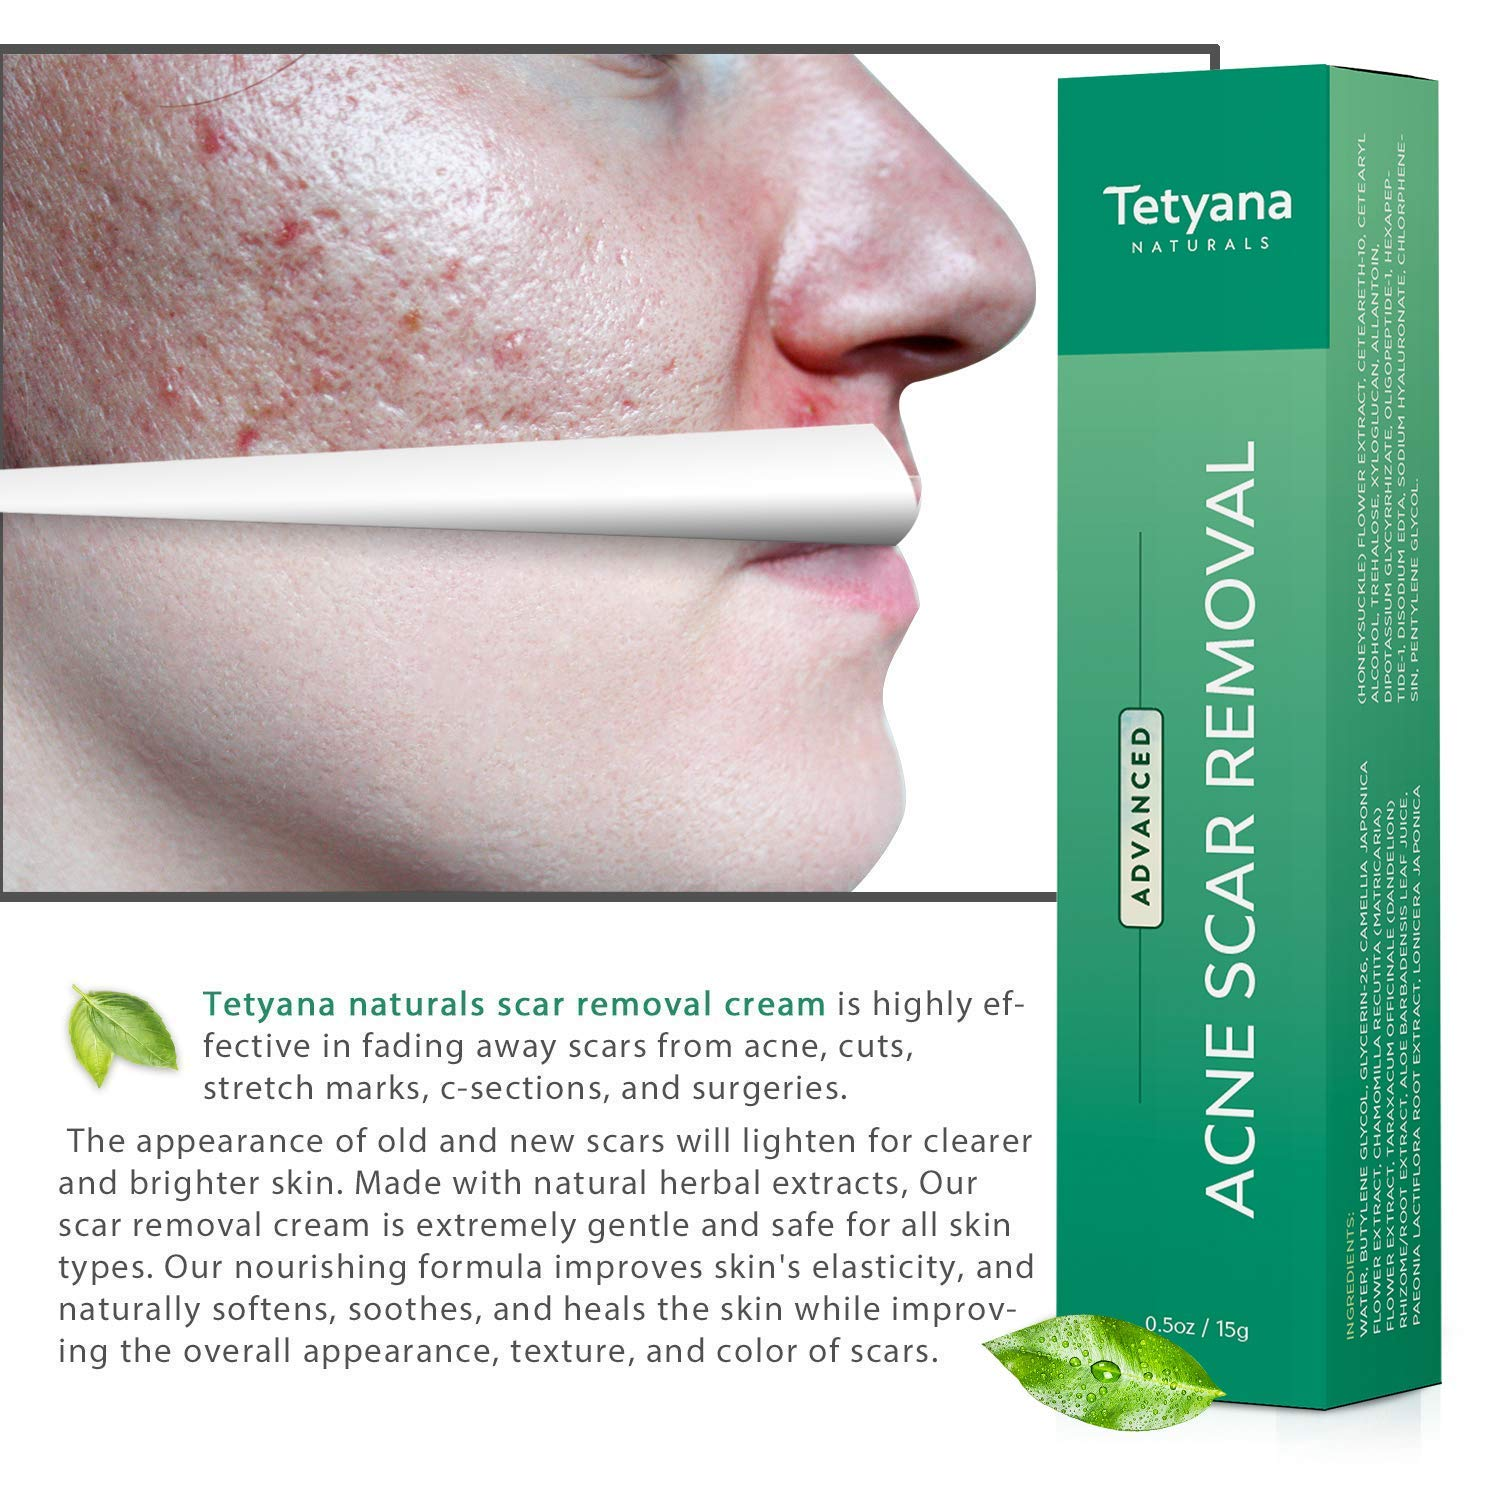 Tetyana naturals Scar Gel Acne Scar Removal for Face  Body Old  New Scars from Cuts Stretch Marks